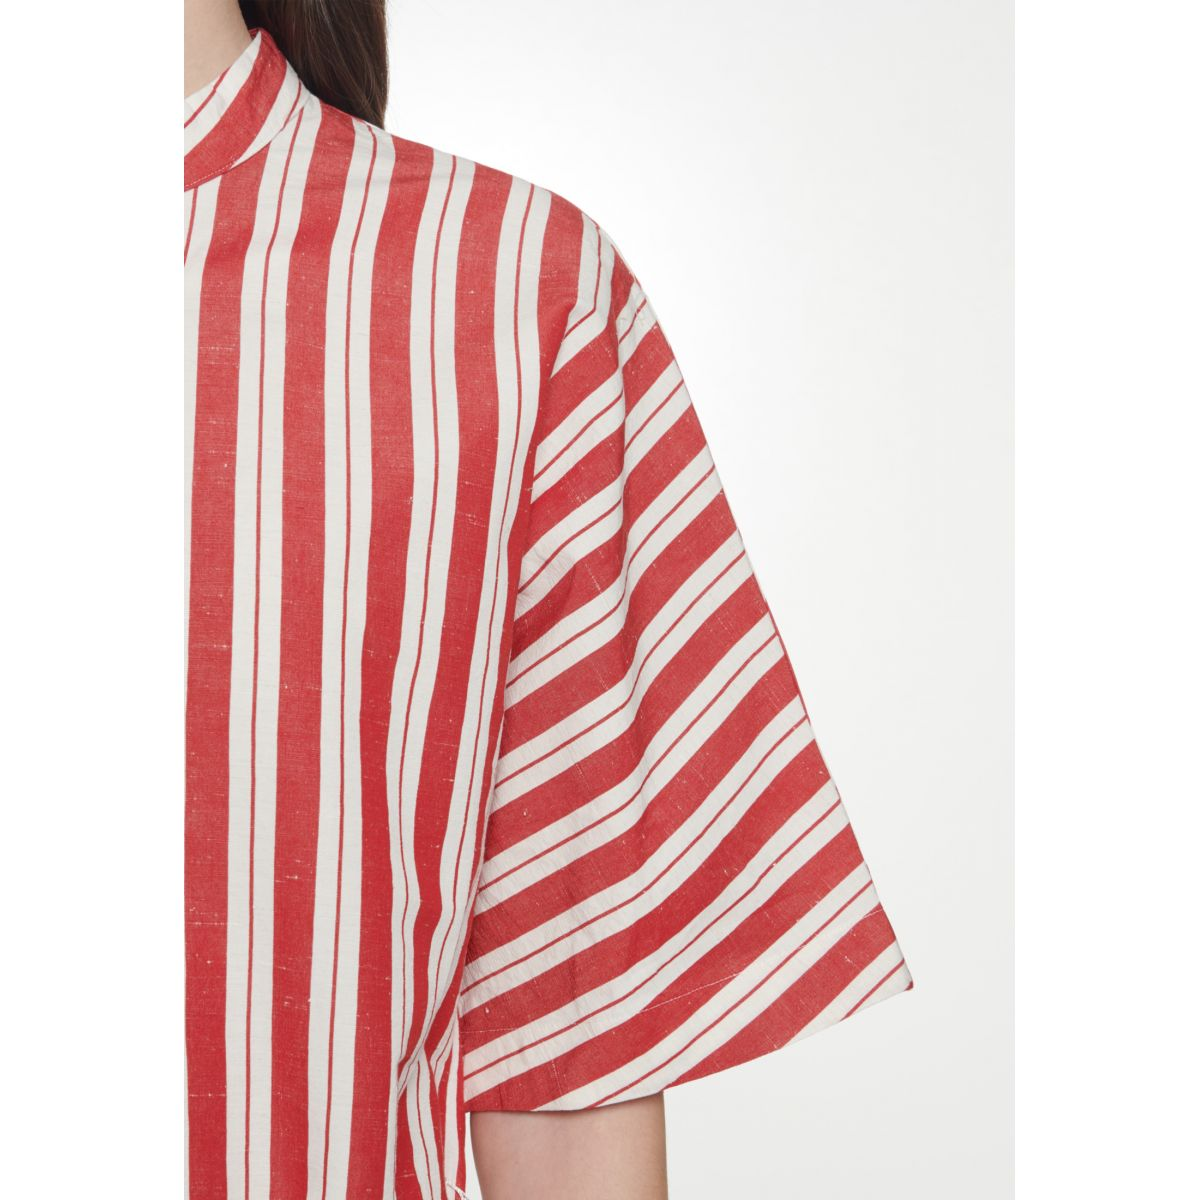 Robe-chemisier manches courtes coton-lin rayures rouges